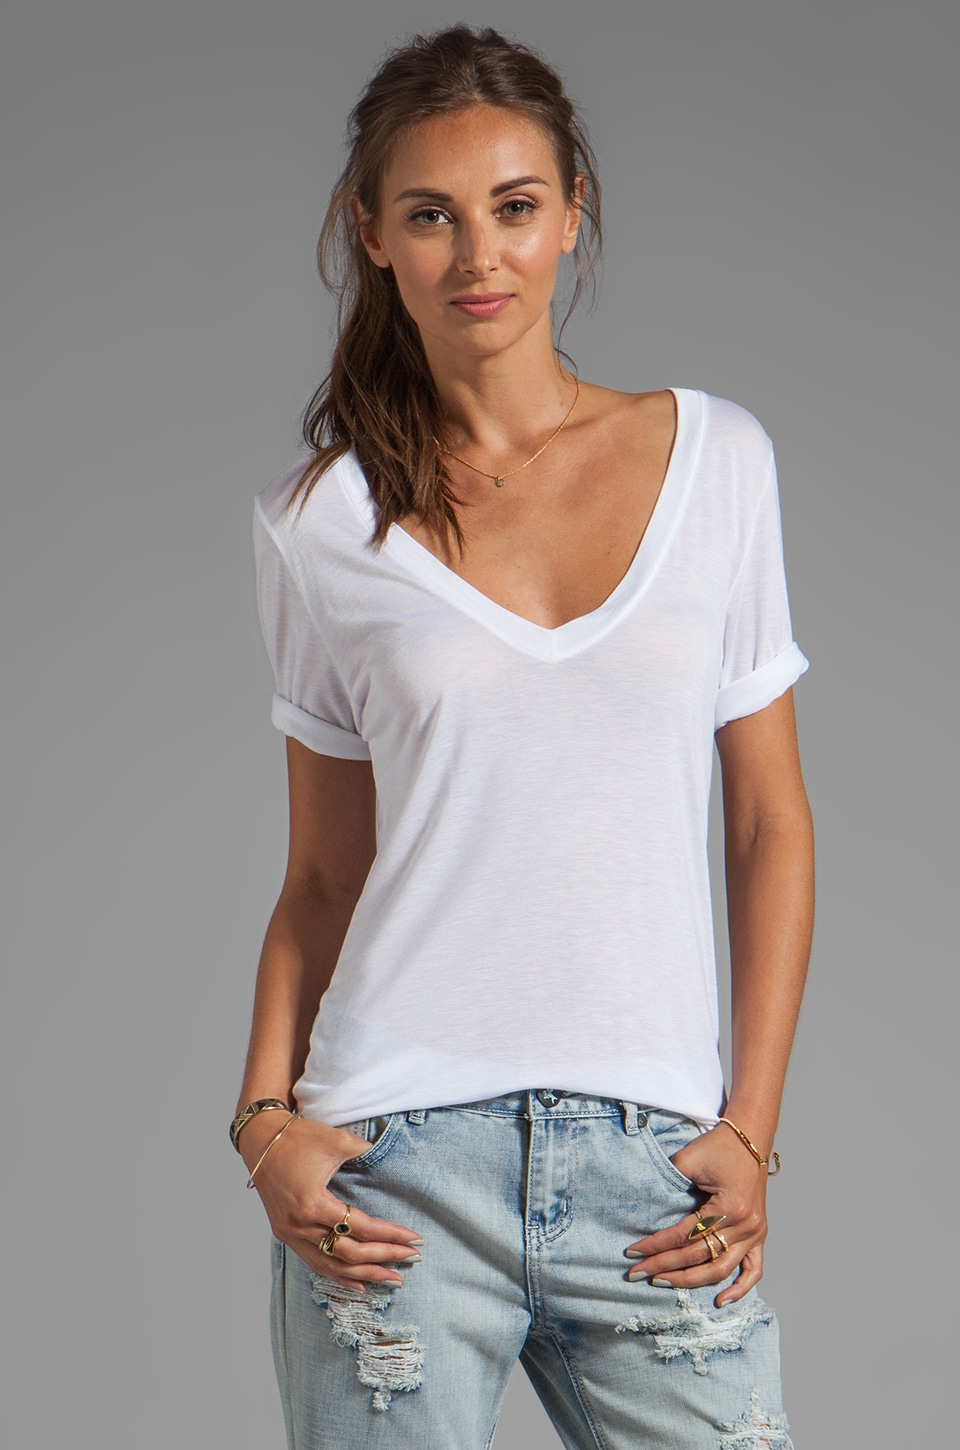 Feel the Piece Best Friend V-Neck Tee in White